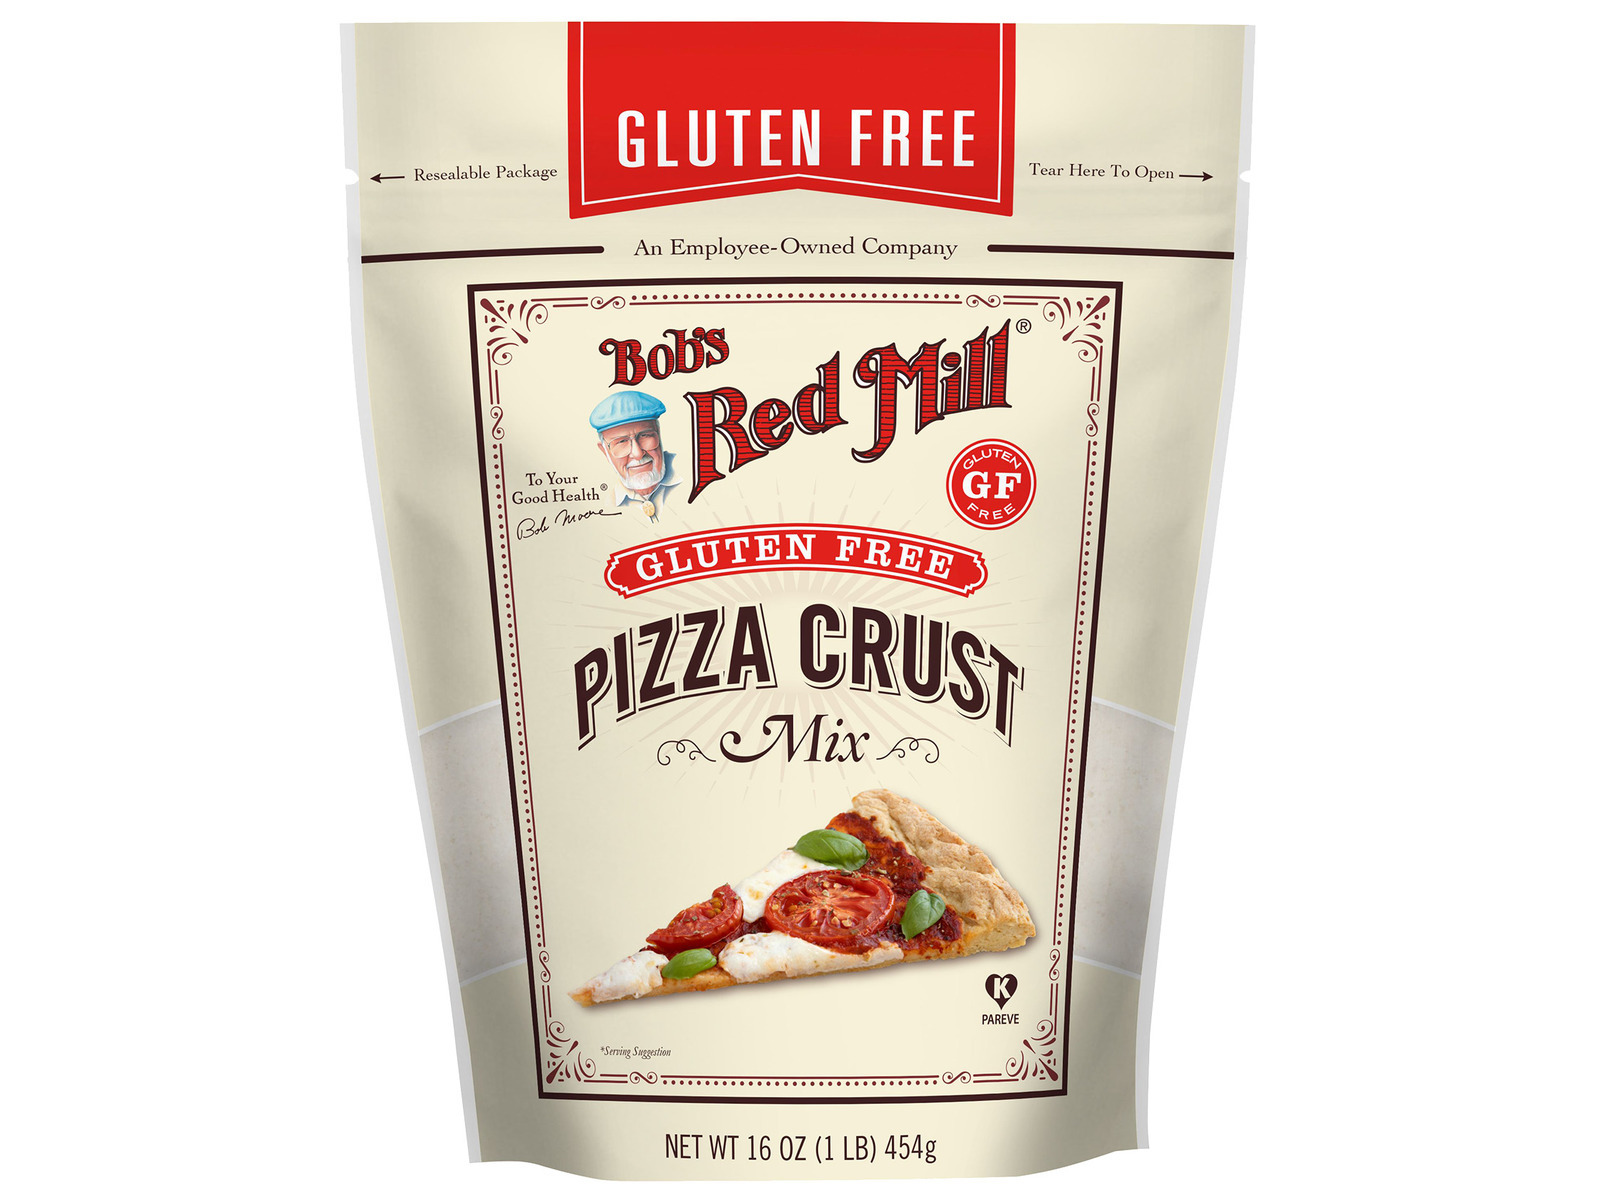 GF Pizza Crust Mix